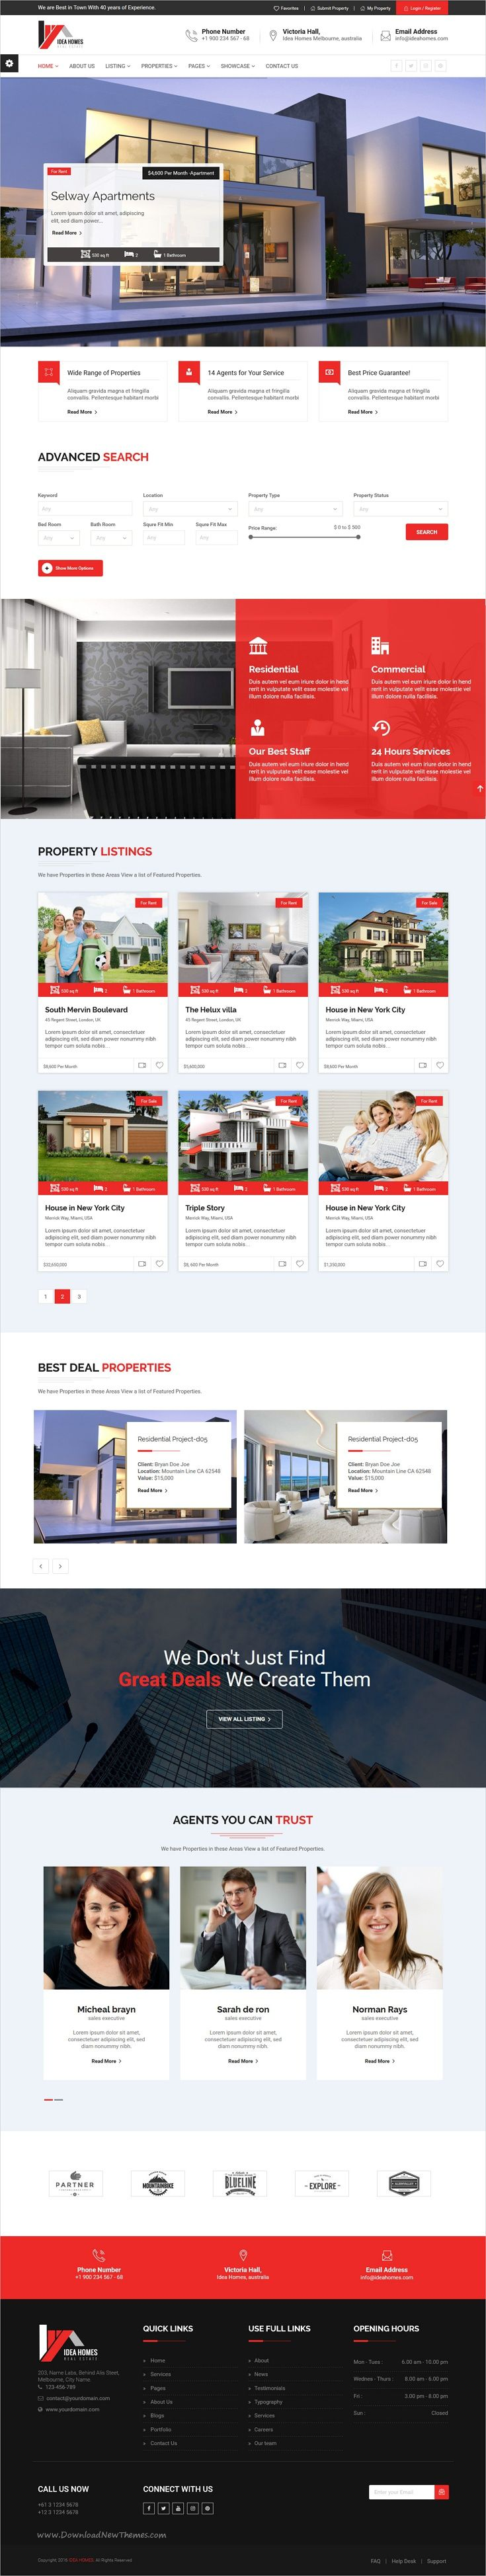 Idea homes Real Estate Bootstrap Template